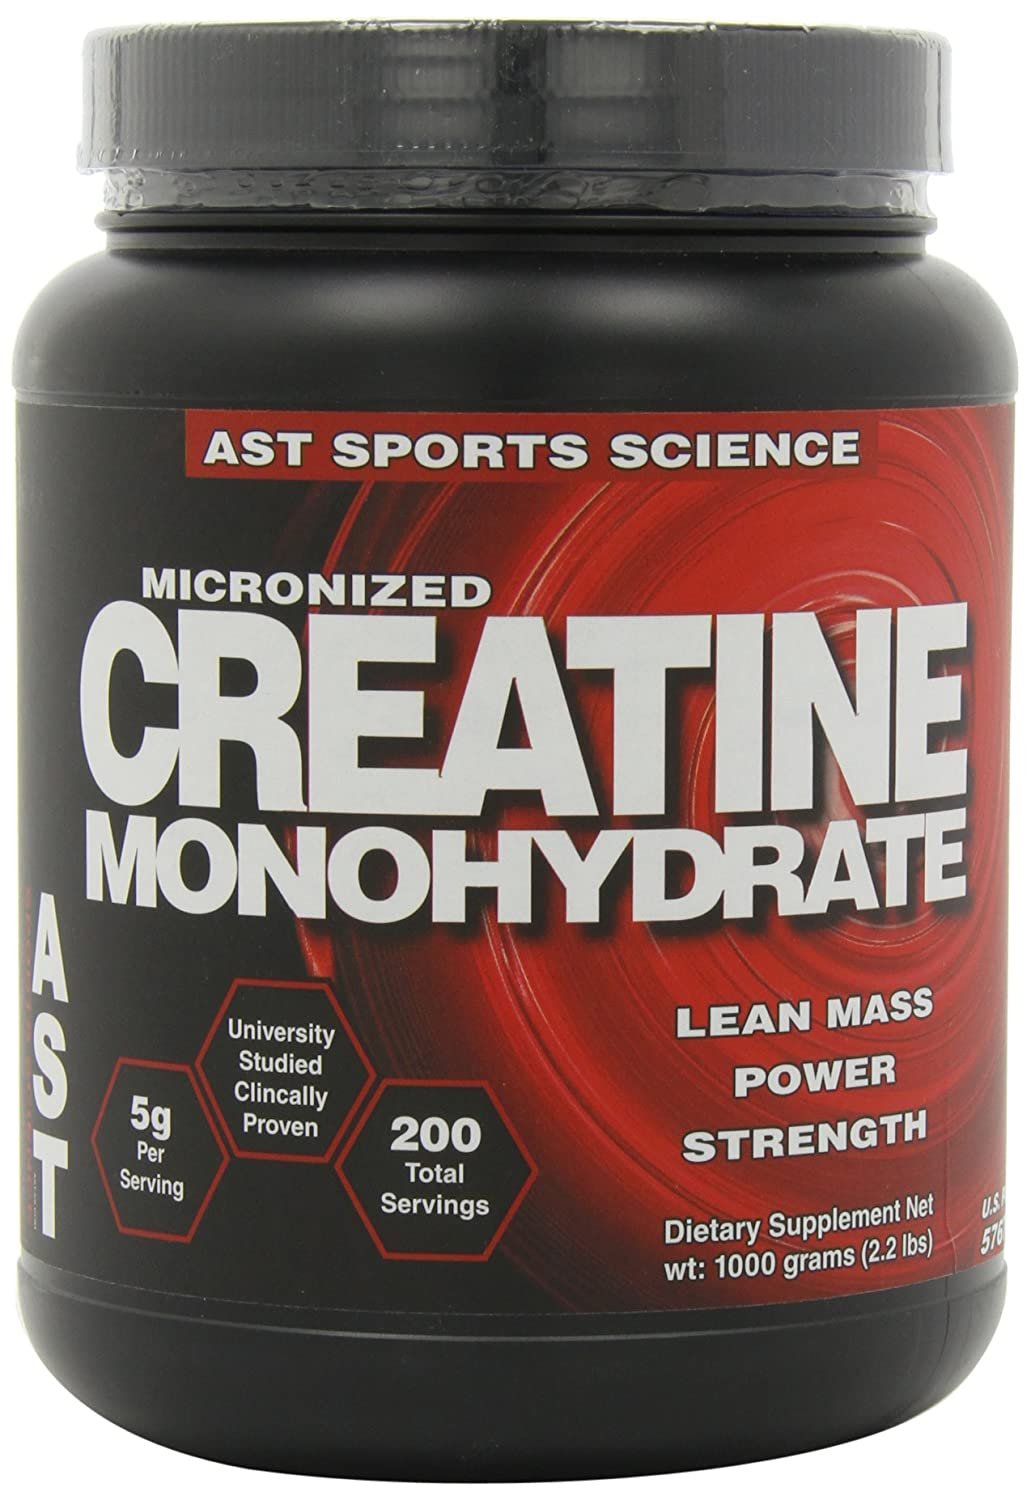 AST Sports Science Micronized Creatine Monohydrate, 2.2 lbs 1000 g